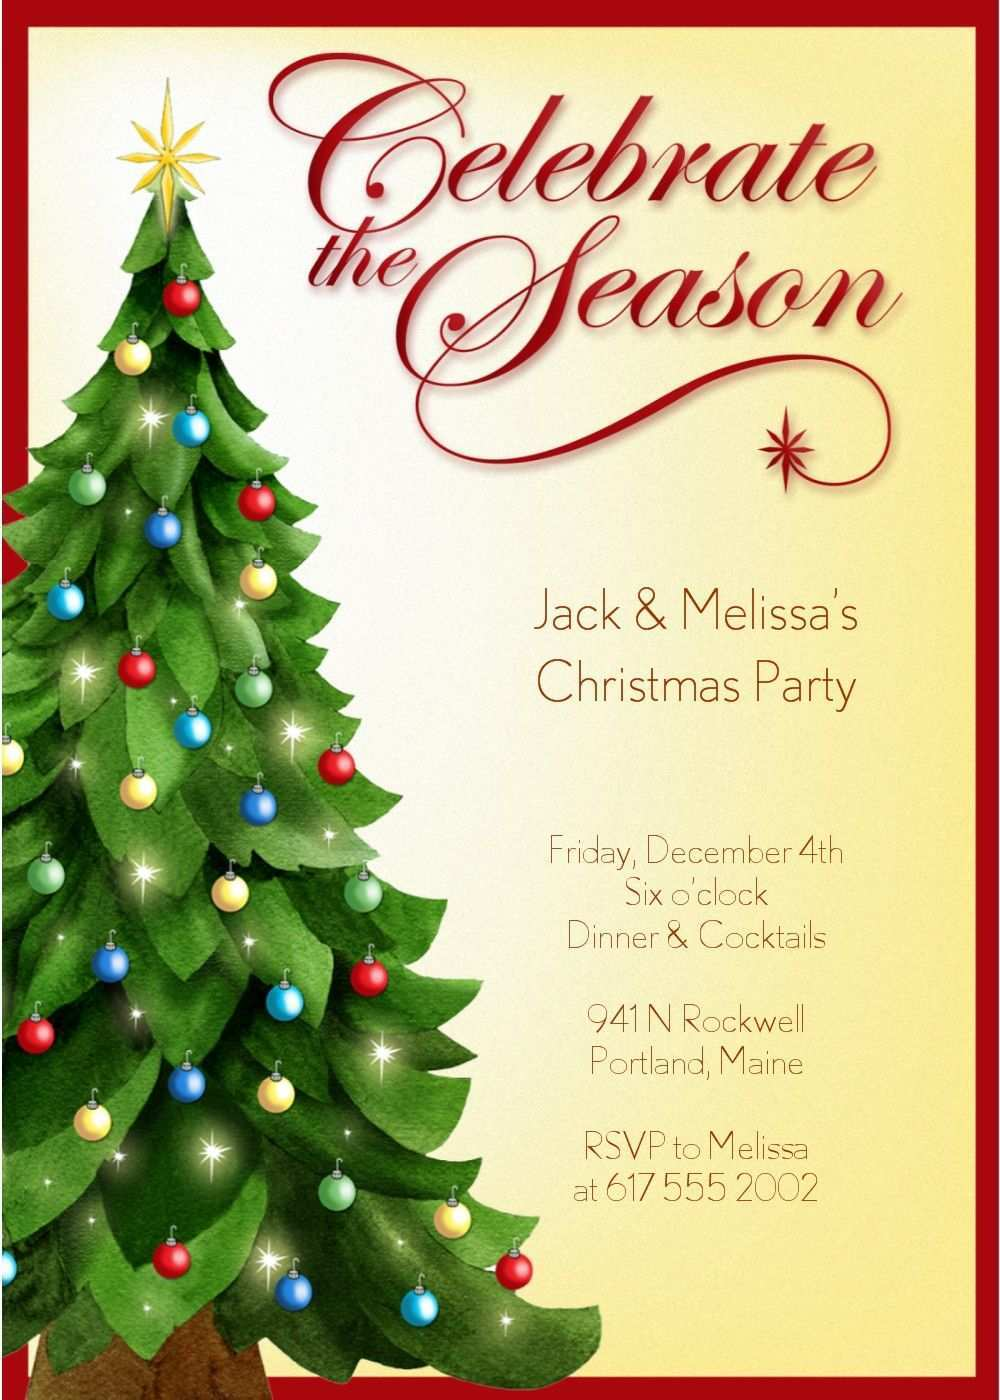 37 Visiting Christmas Party Invite Template Uk Download for Christmas Party Invite Template Uk